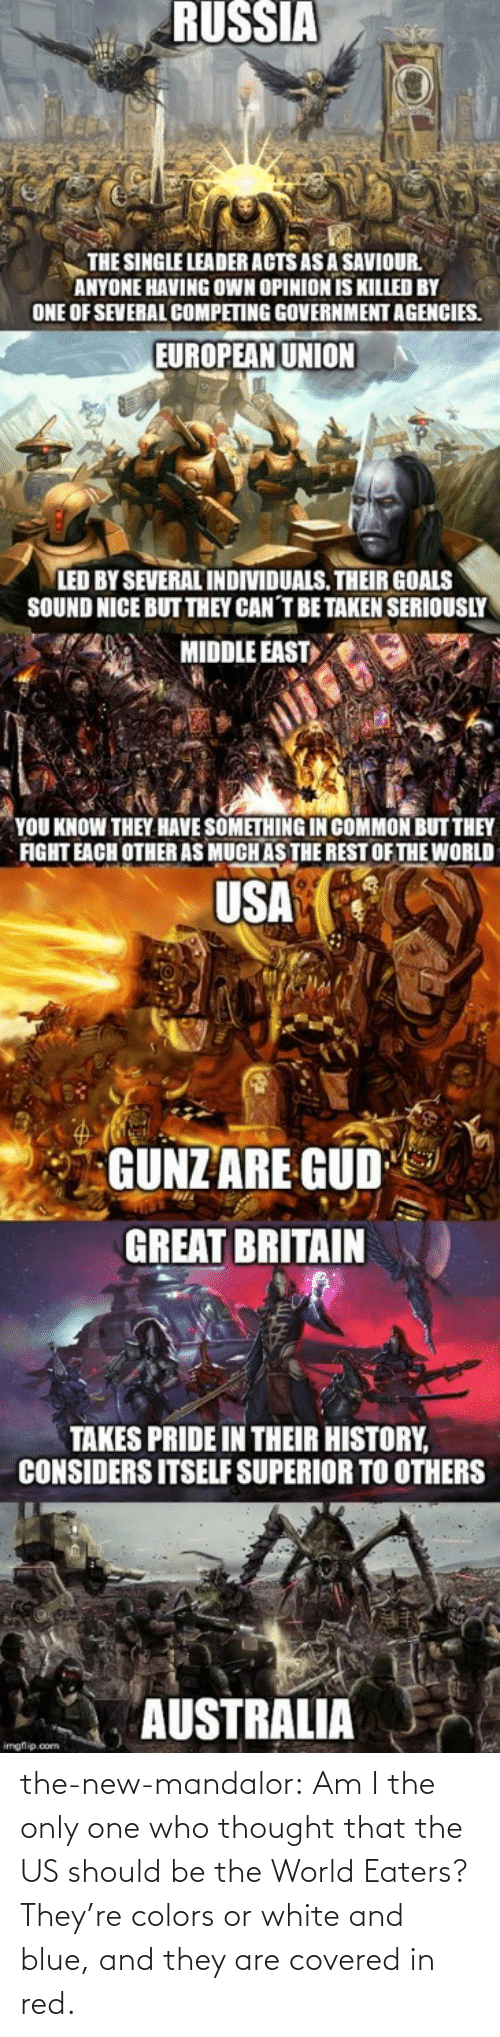 The Us: the-new-mandalor:  Am I the only one who thought that the US should be the World Eaters? They're colors or white and blue, and they are covered in red.